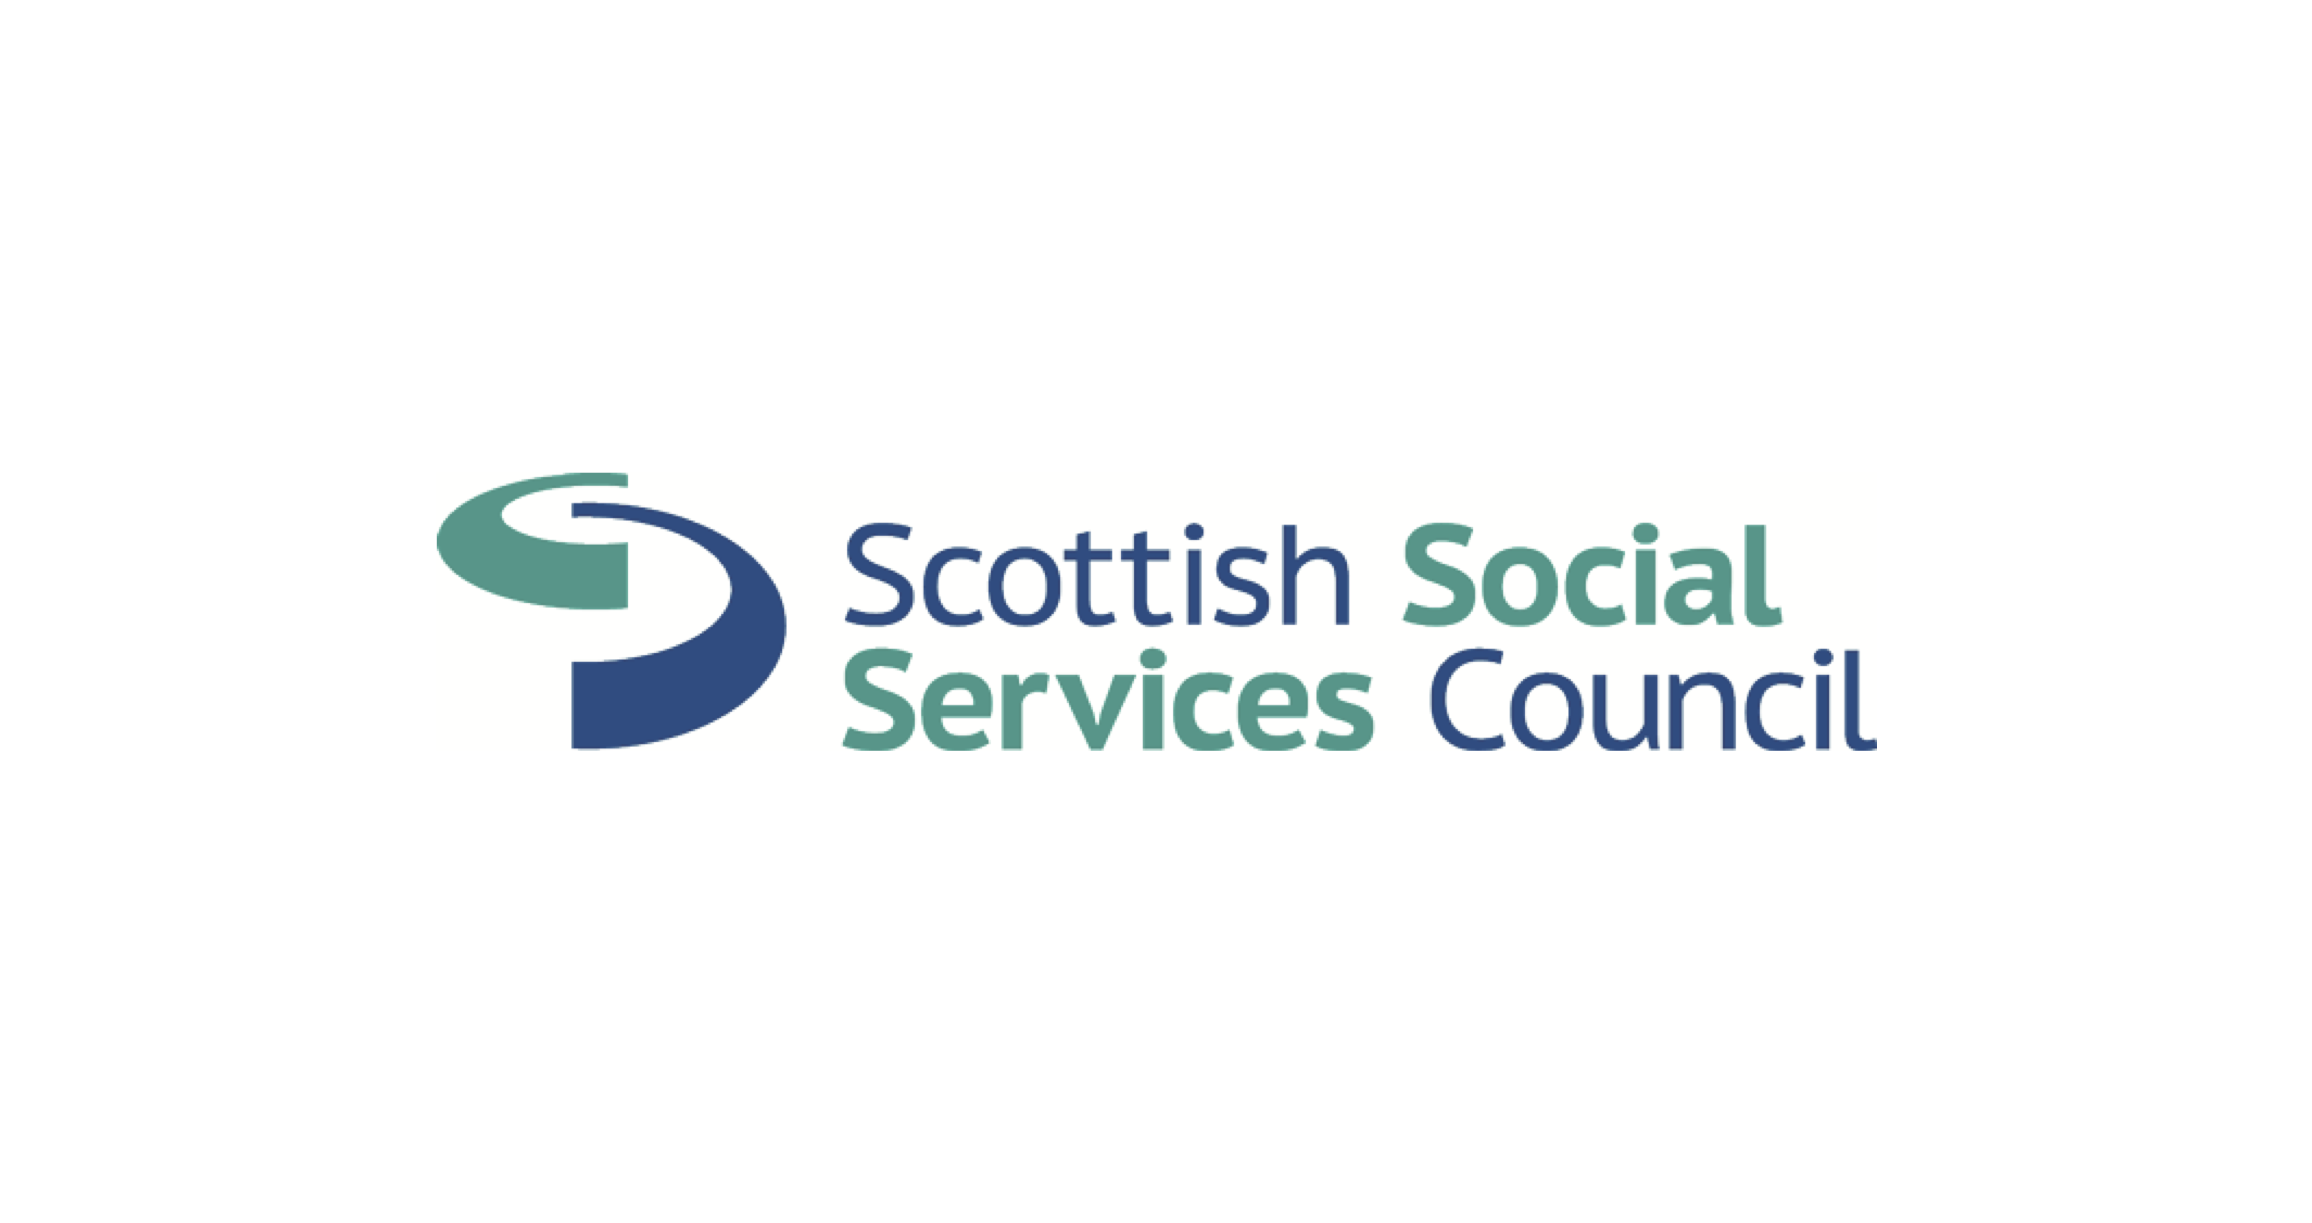 careline web logo scottish social services council copy